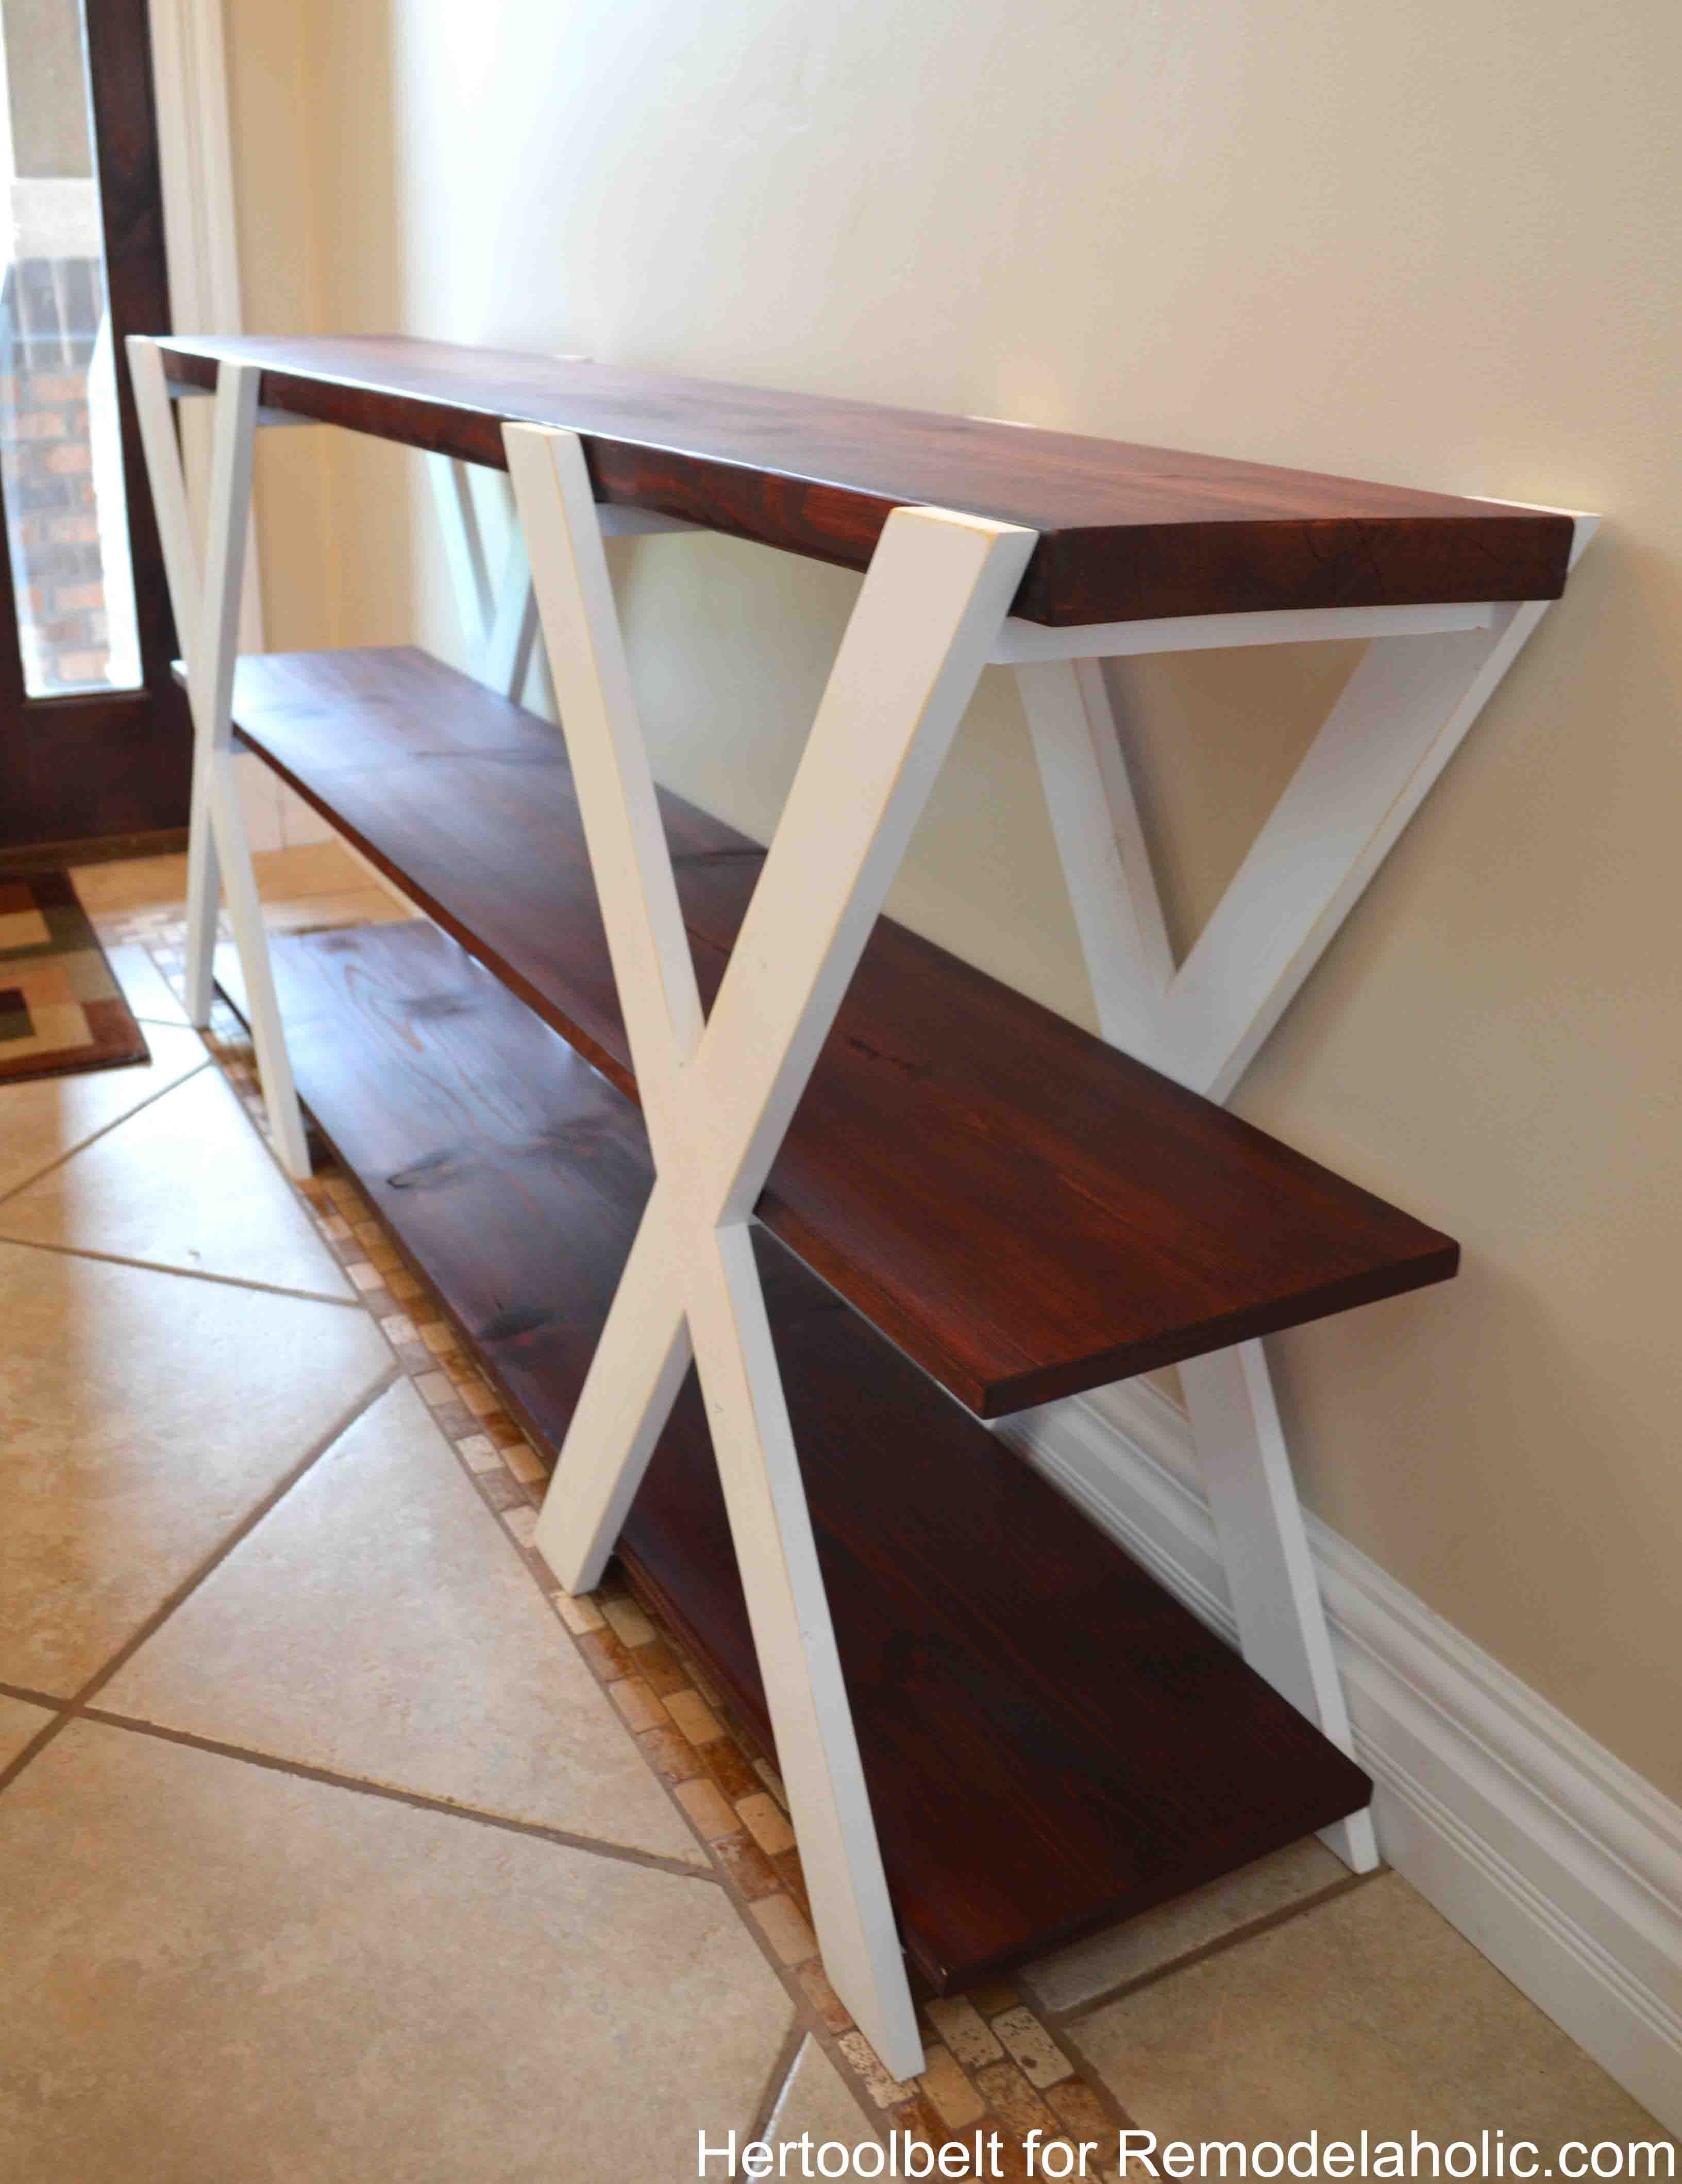 An easy build diy double x console table for your entryway build an easy build diy double x console table for your entryway build for less geotapseo Choice Image